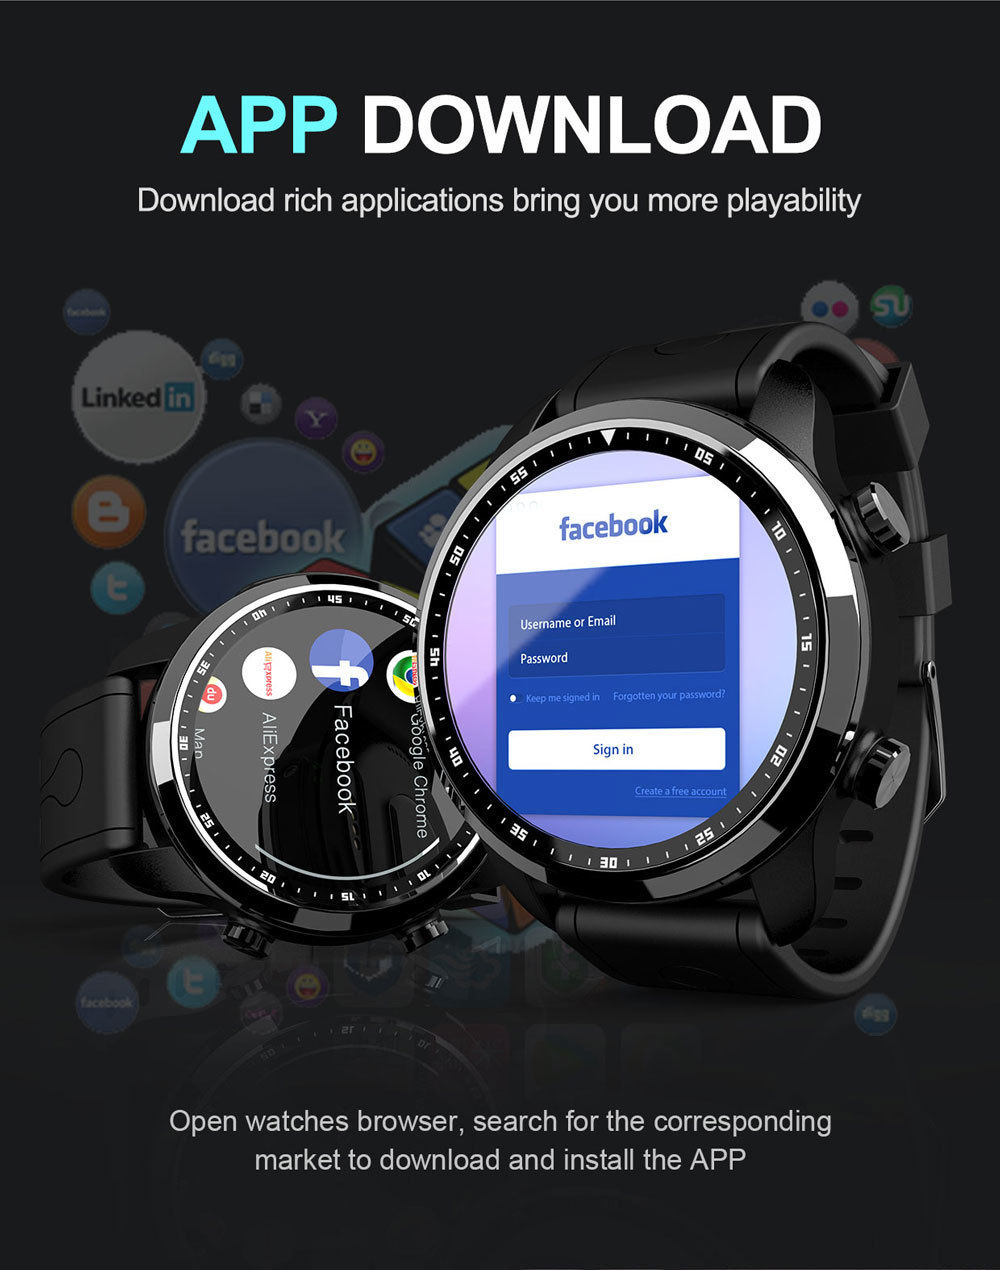 LOKMAT KC06 4G 1+16G GPS WIFI bluetooth Watch Phone 1.3'' OGS Touch Screen Smart Watch Optical Heart Rate Monitor Multiple Sports Modes Fitness Exercise Bracelet